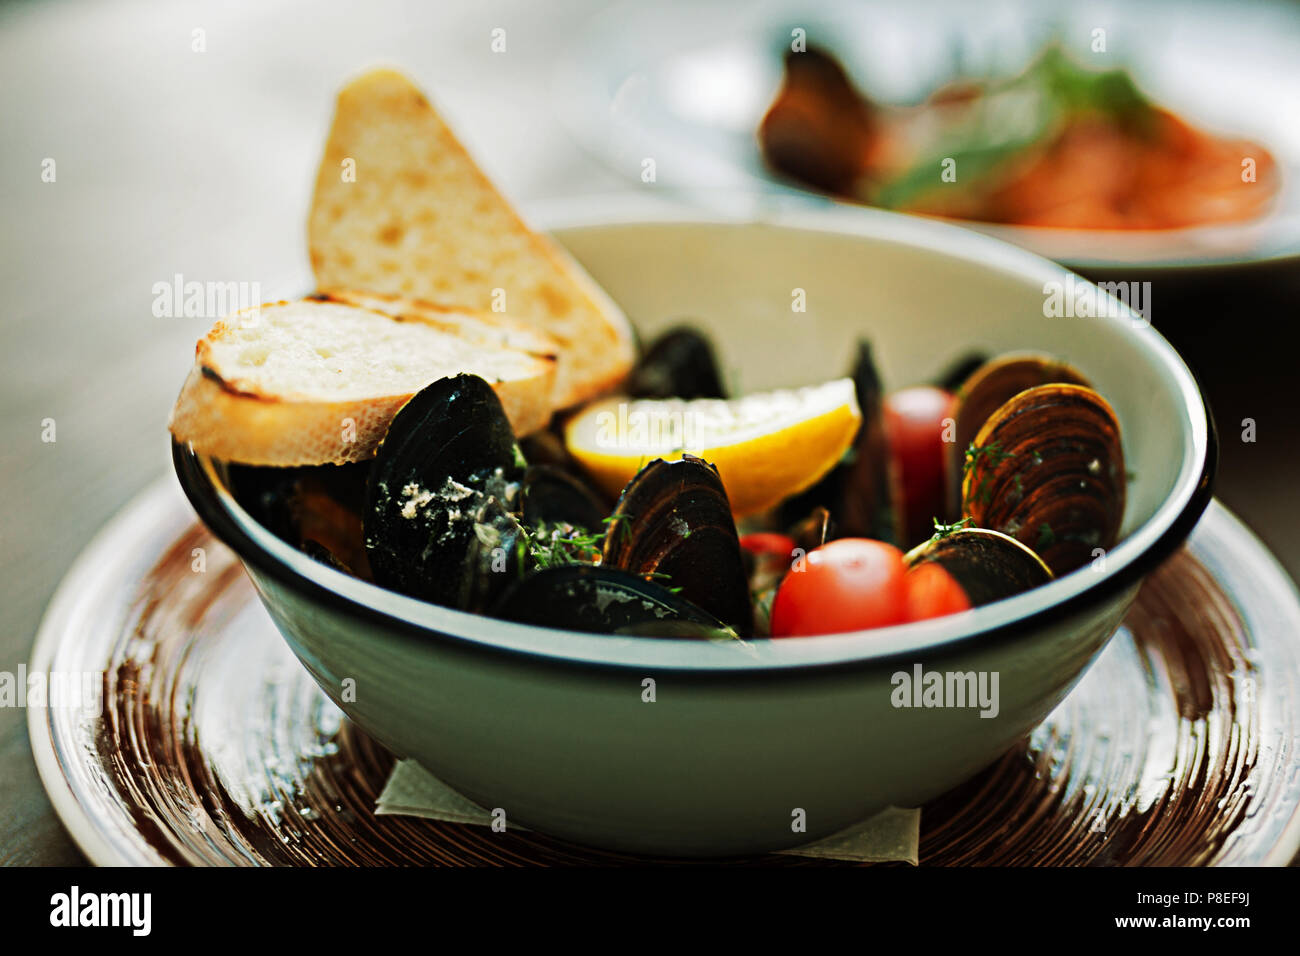 Selective focus of fresh mussels in ceramic plate - Stock Image